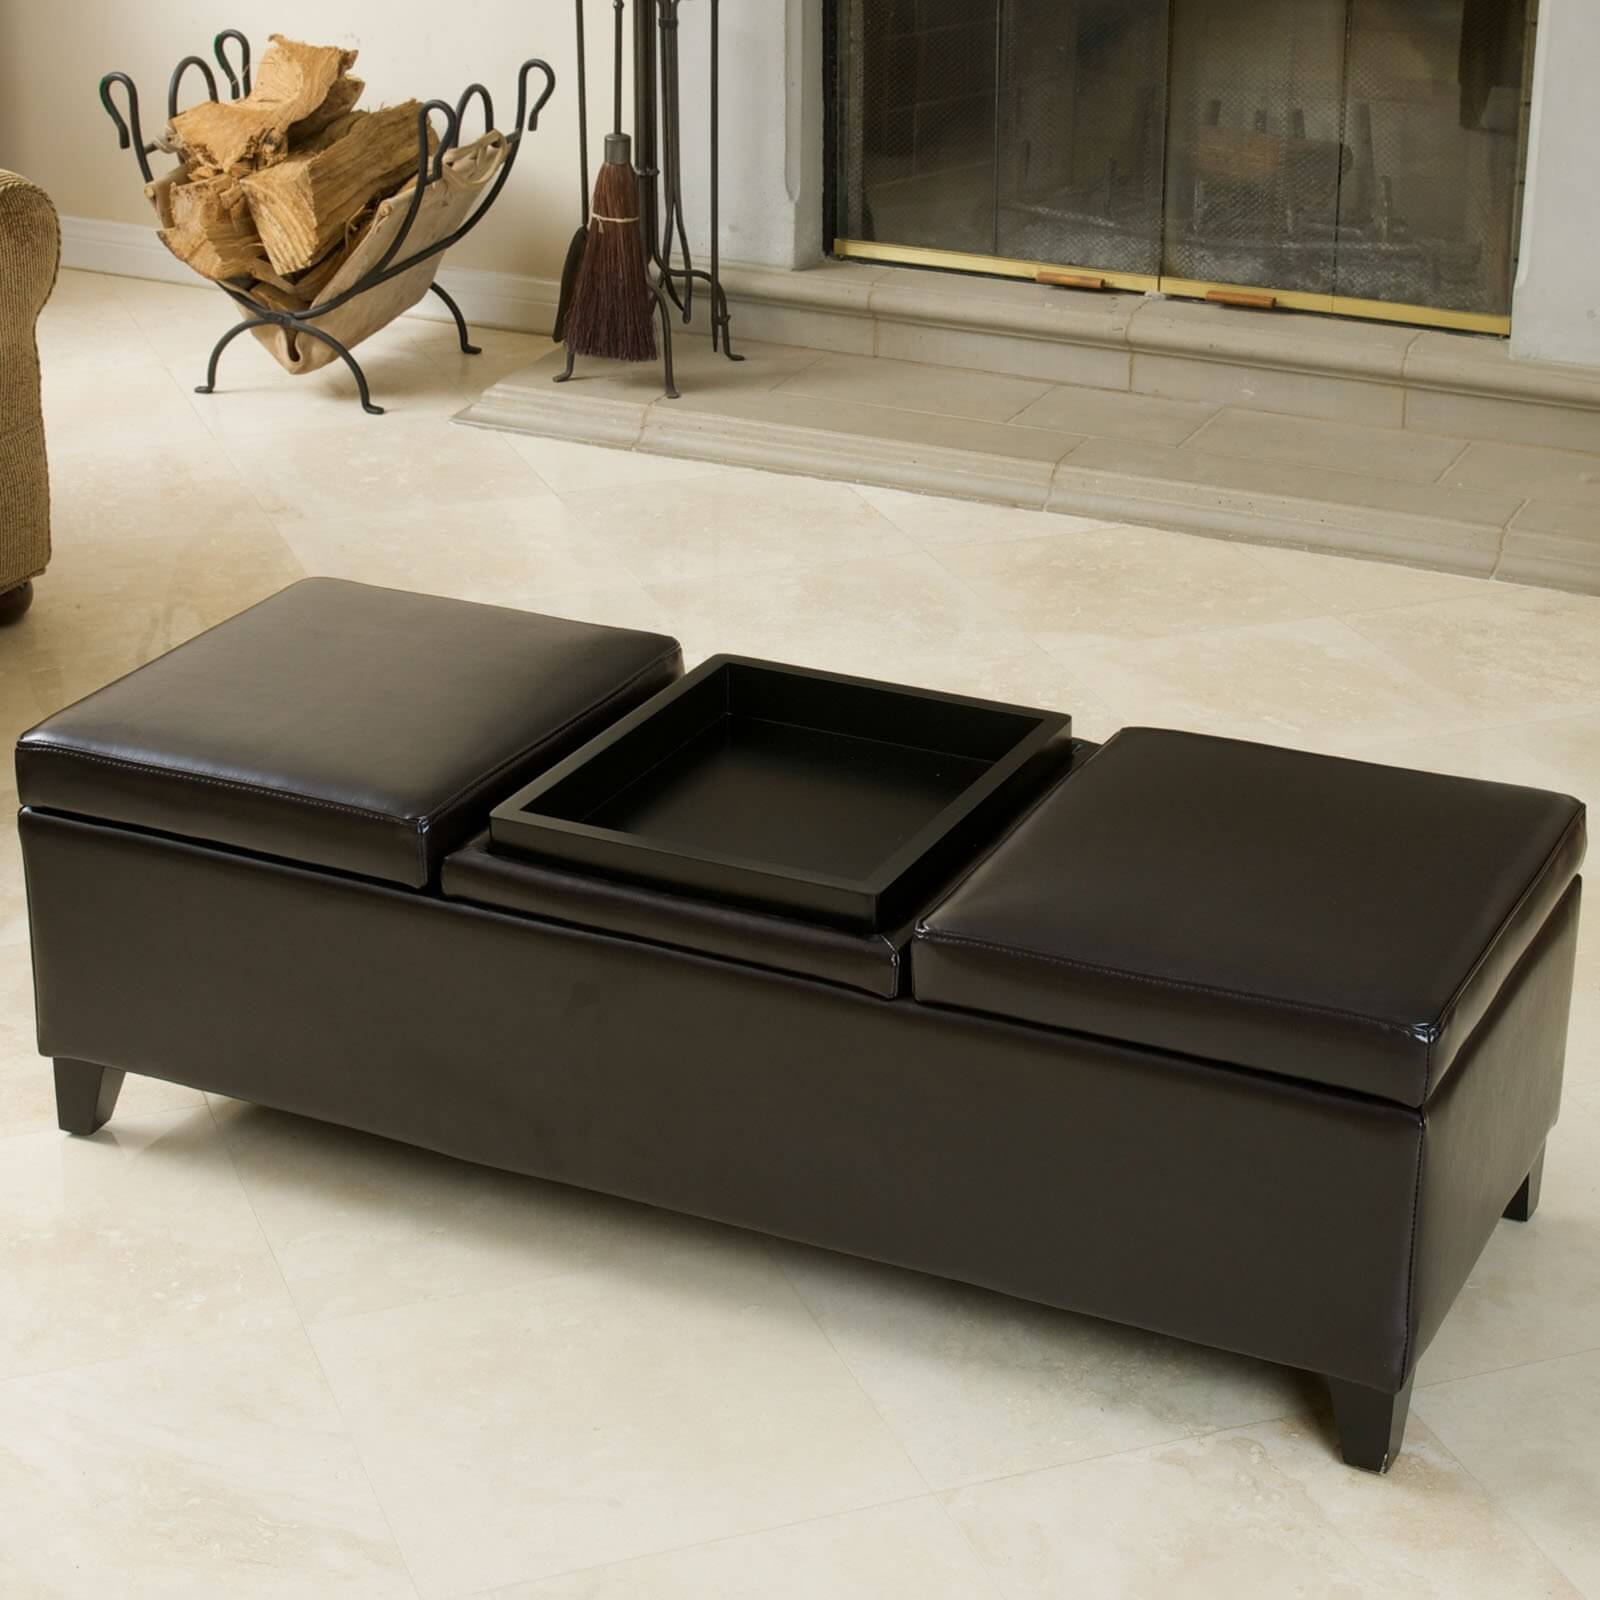 Footstool Coffee Table Tray: 36 Top Brown Leather Ottoman Coffee Tables